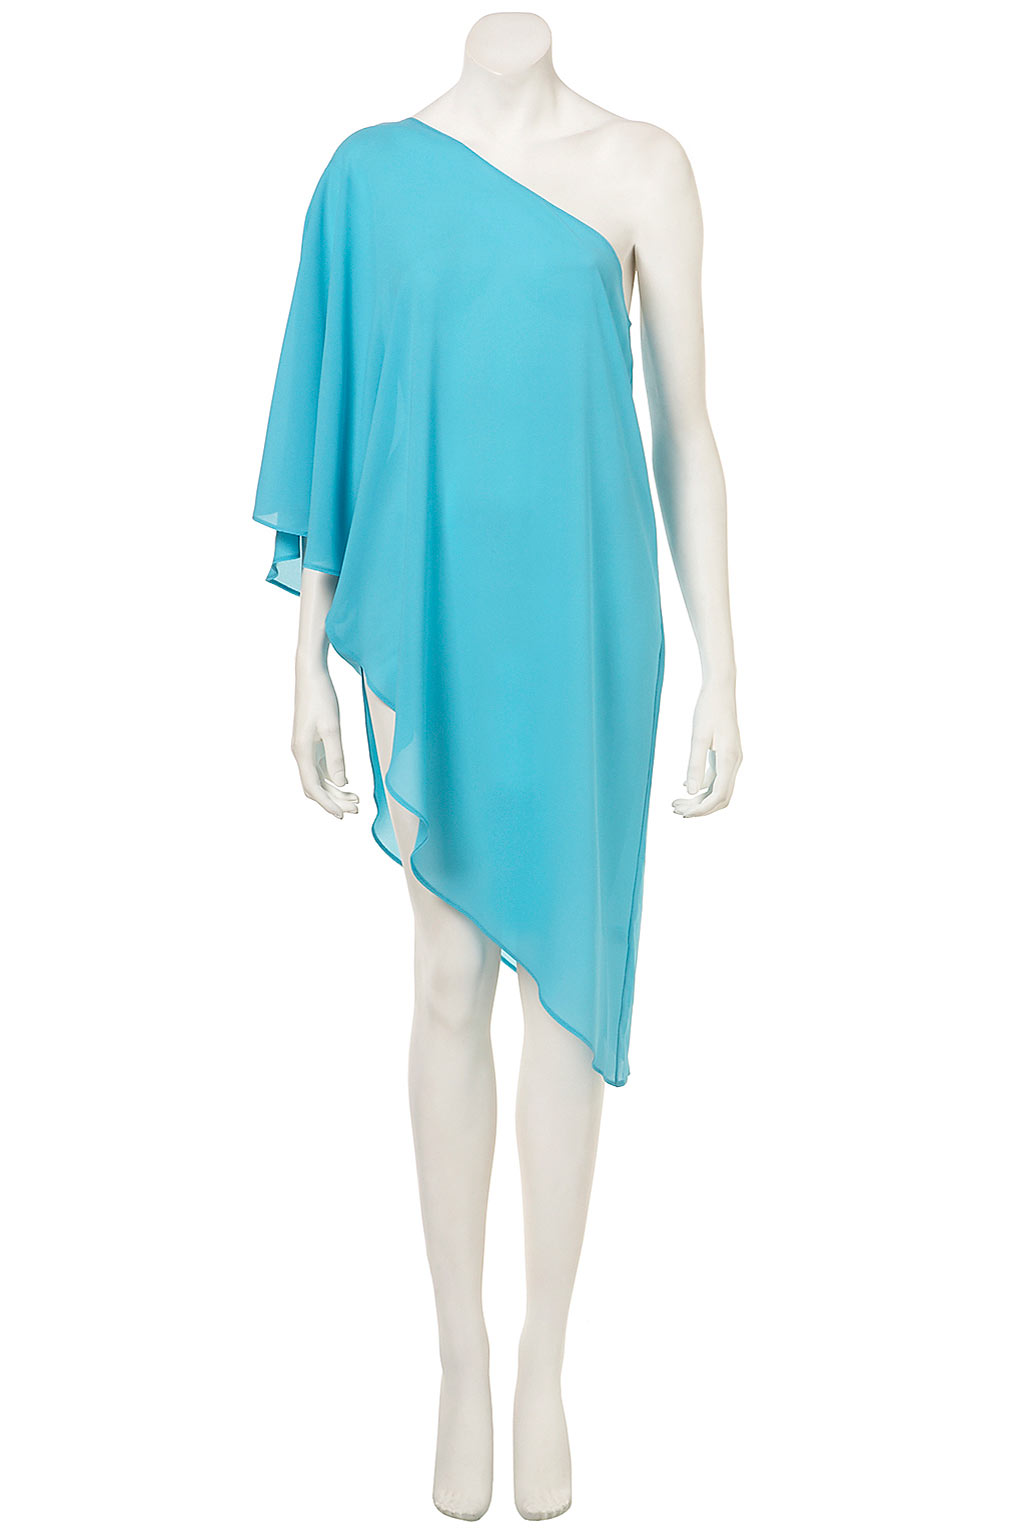 Get free shipping on Roland Mouret Asymmetric One-Shoulder Abstract Floral Tunic Dress at Neiman Marcus. Shop the latest luxury fashions from top designers.